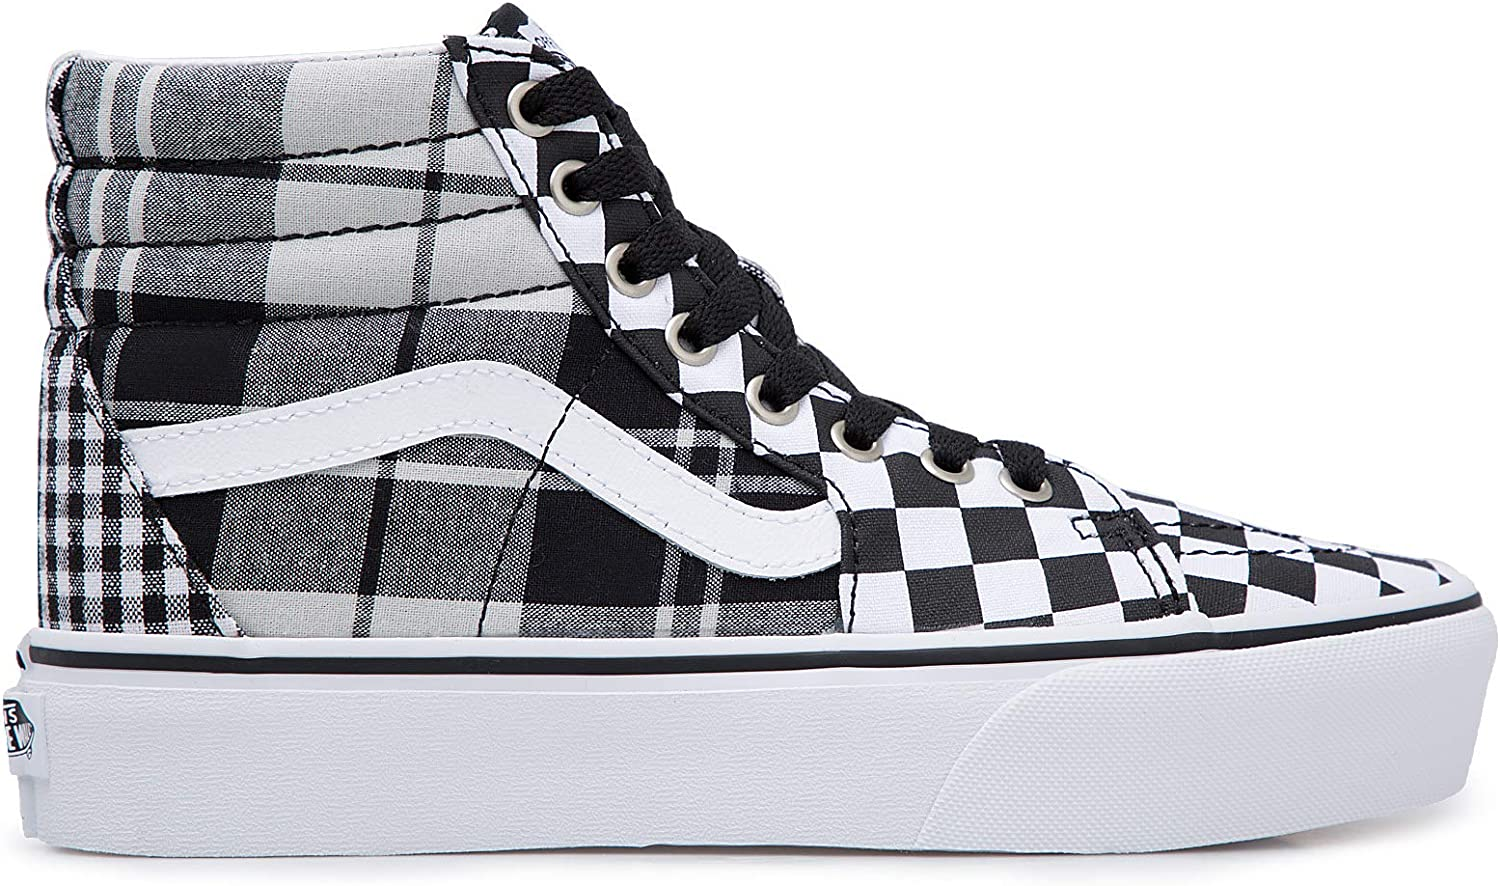 Vans SK8 HI Platform 2 (Plaid Checkerboard) BlackTrue White